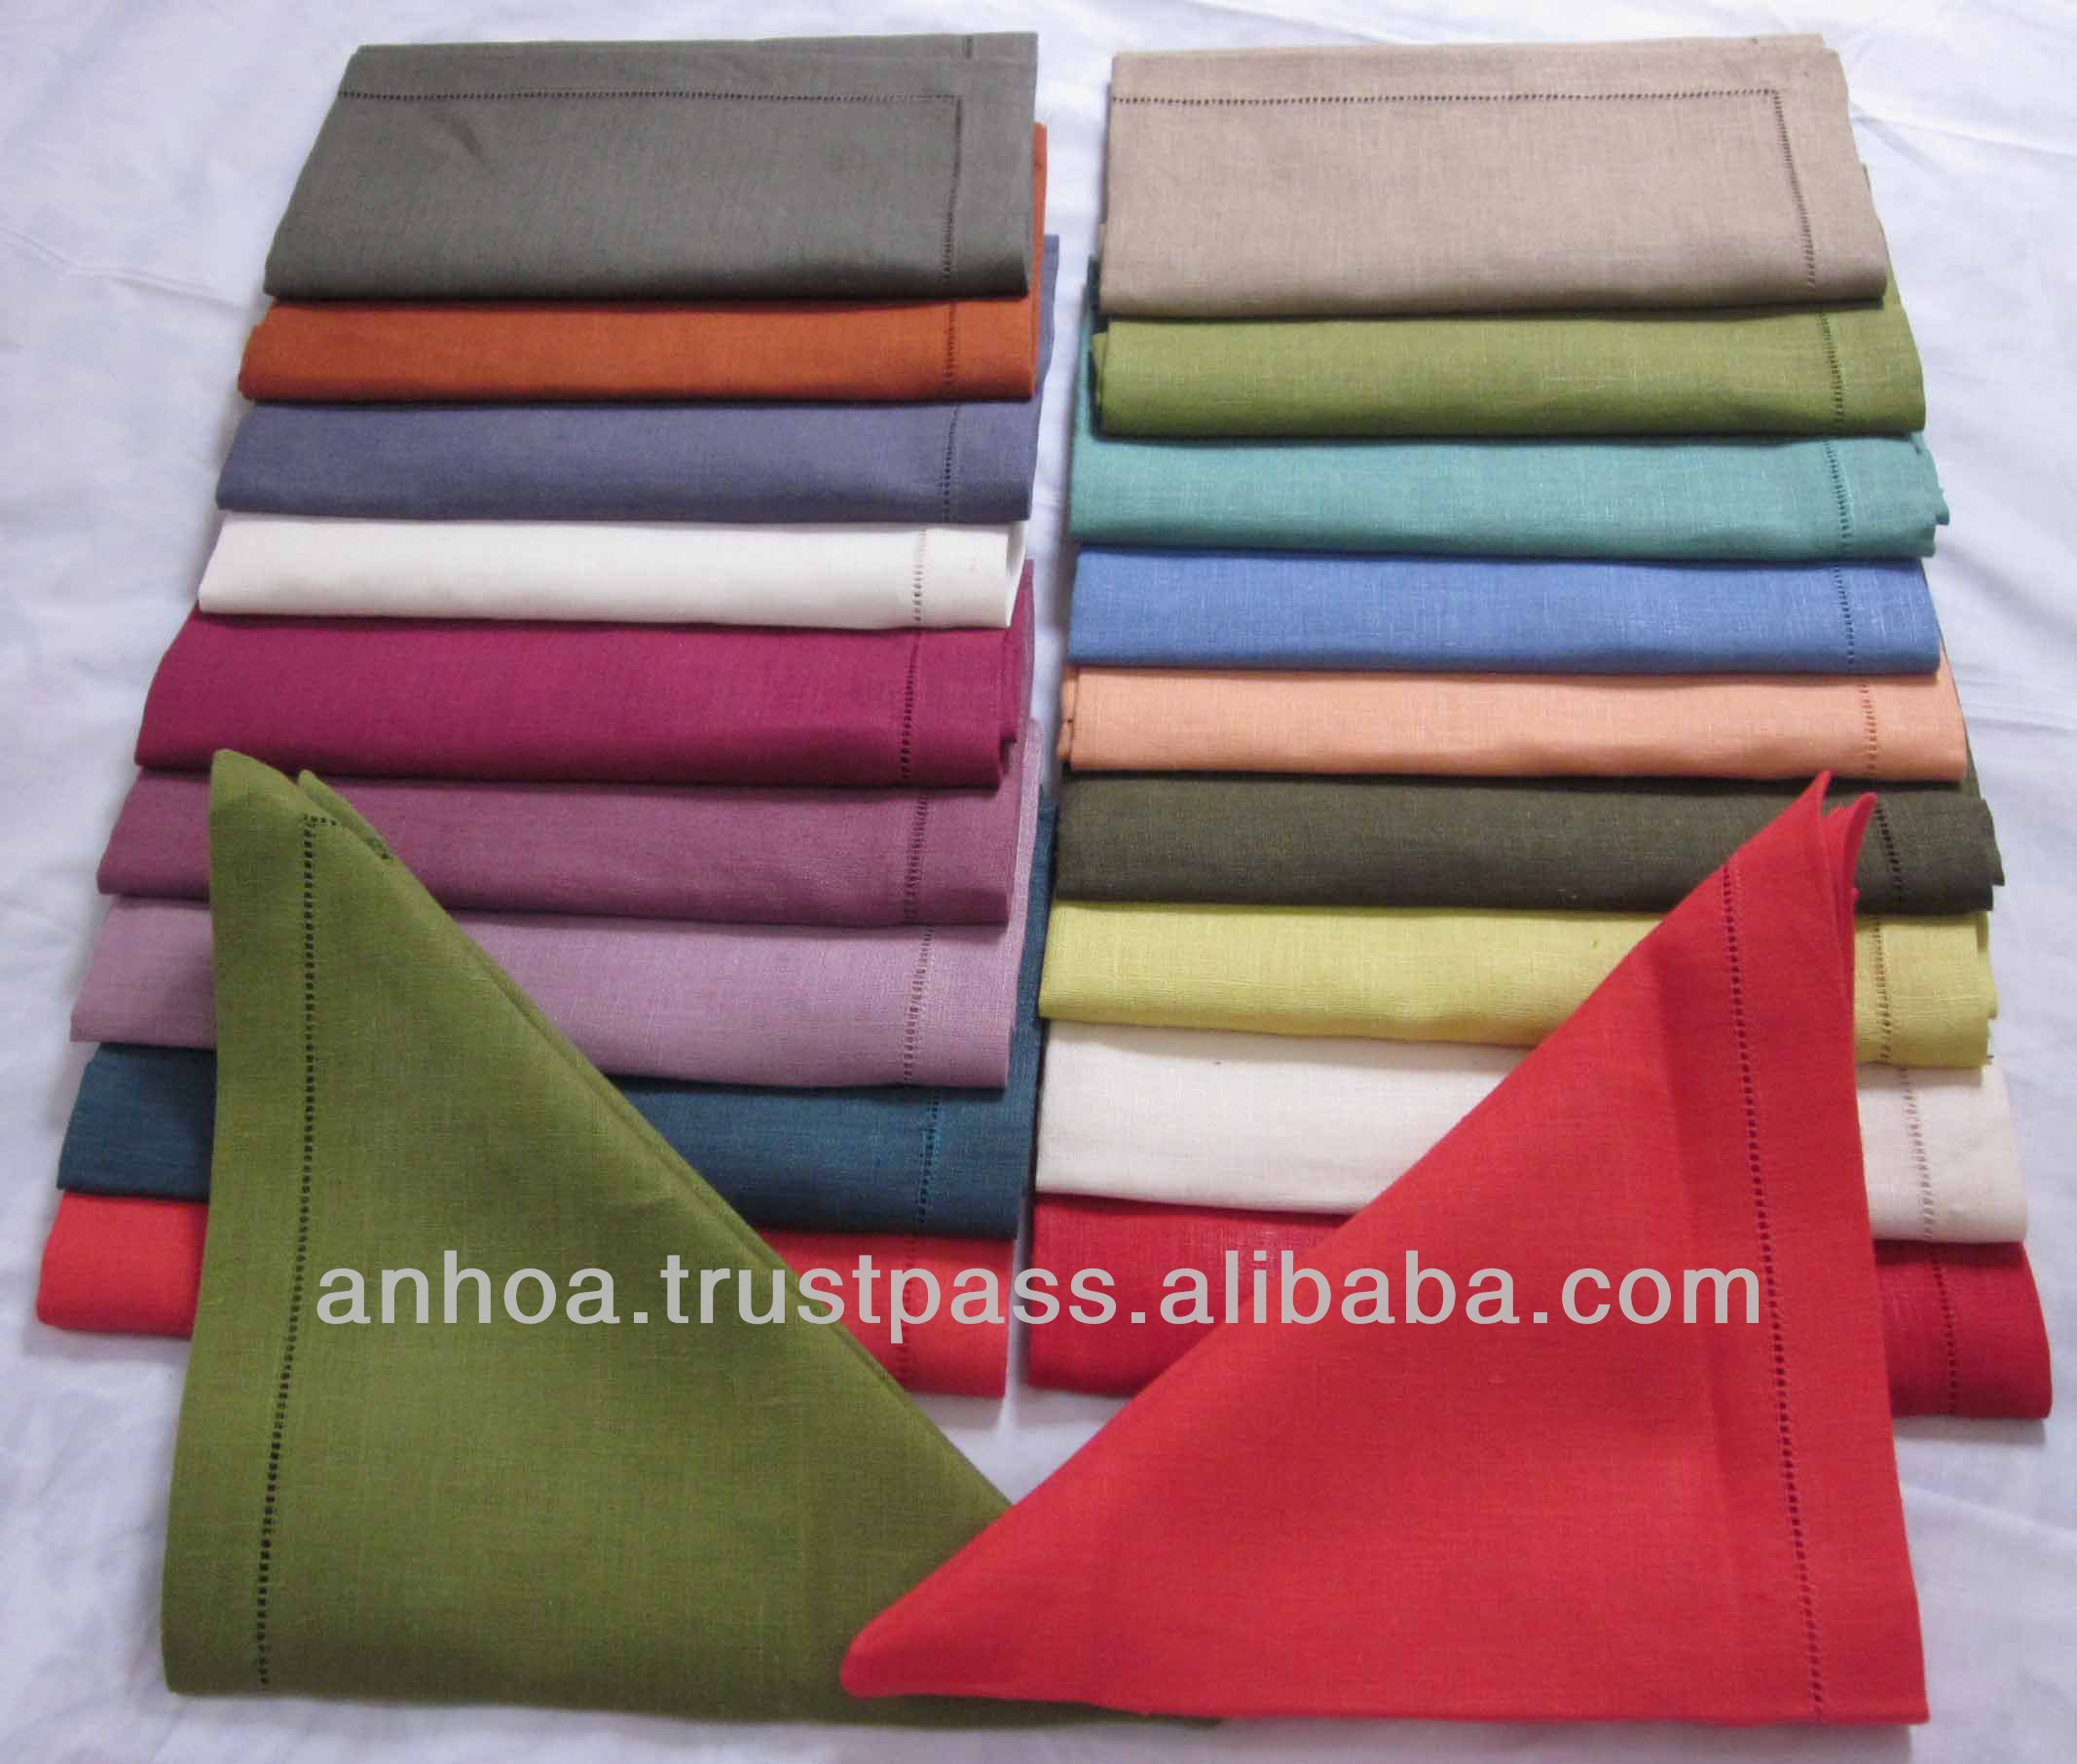 Best seller linen napkin, many colors dinner napkin